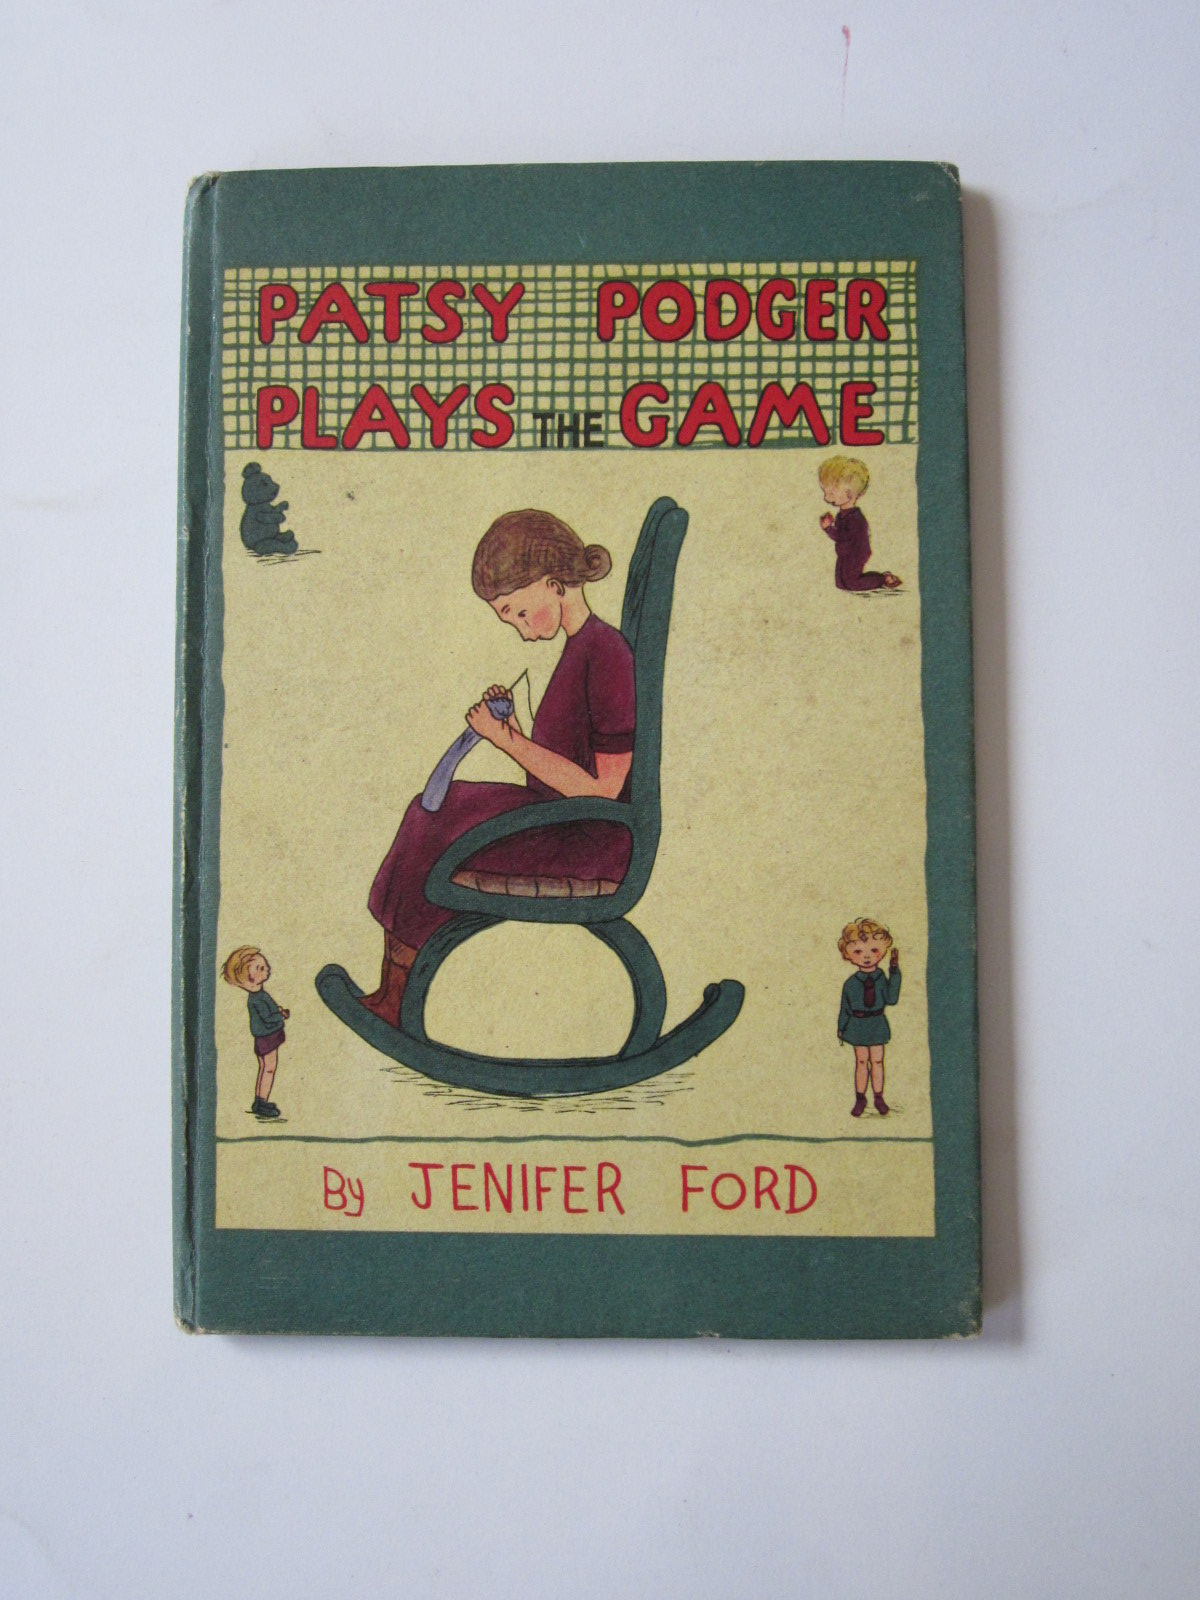 Photo of PATSY PODGER PLAYS THE GAME written by Ford, Jenifer illustrated by Ford, Jenifer published by George G. Harrap & Co. Ltd. (STOCK CODE: 1308309)  for sale by Stella & Rose's Books